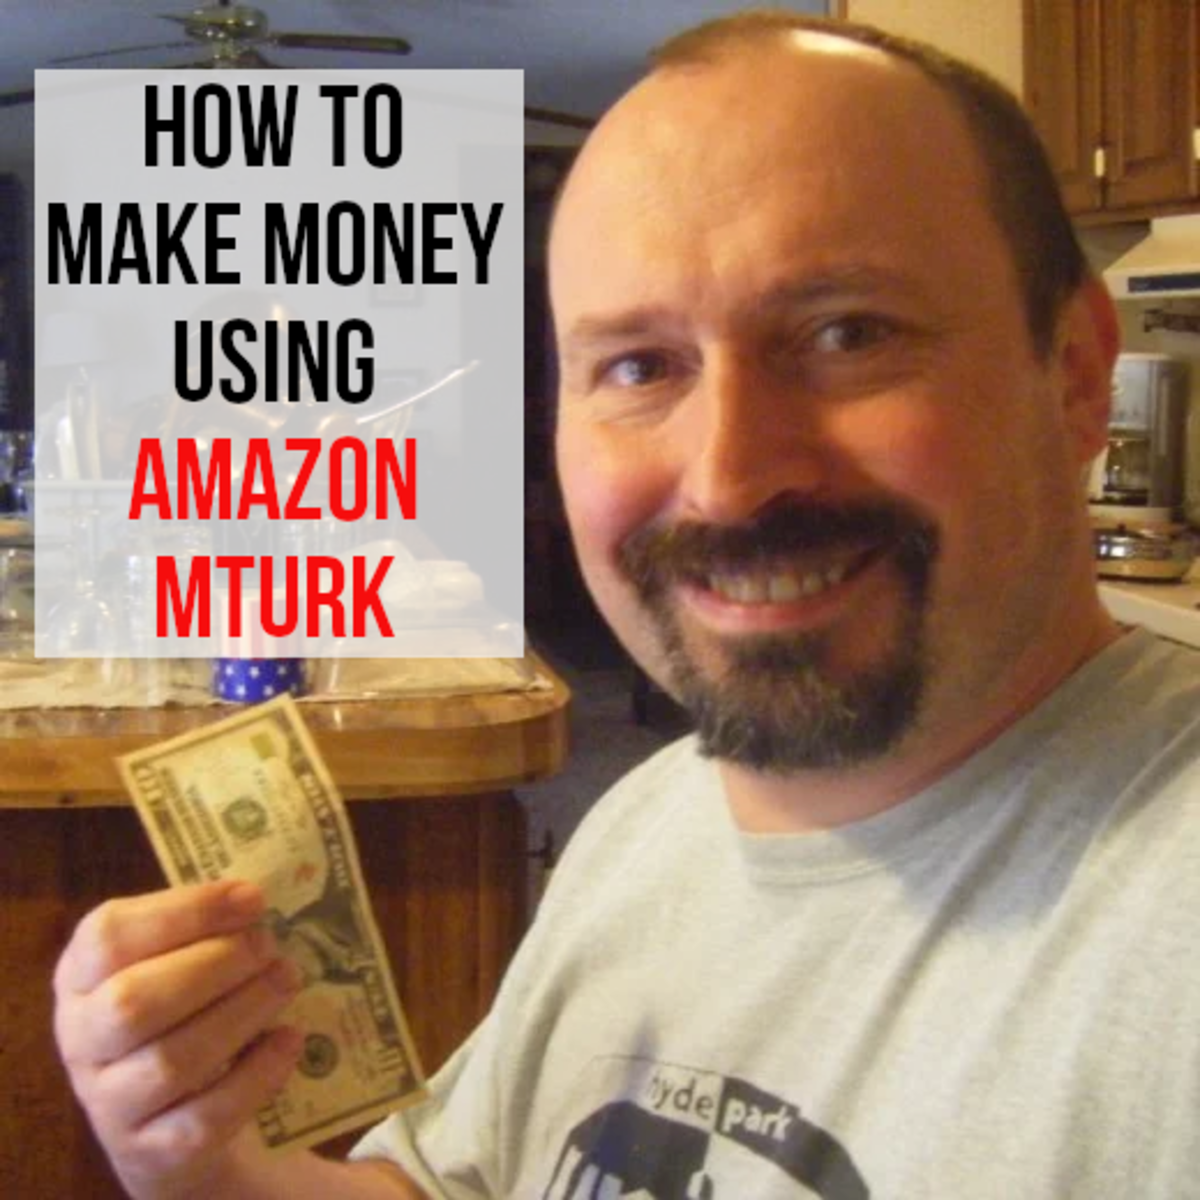 Top 10 Amazon MTurk Tips and Tricks